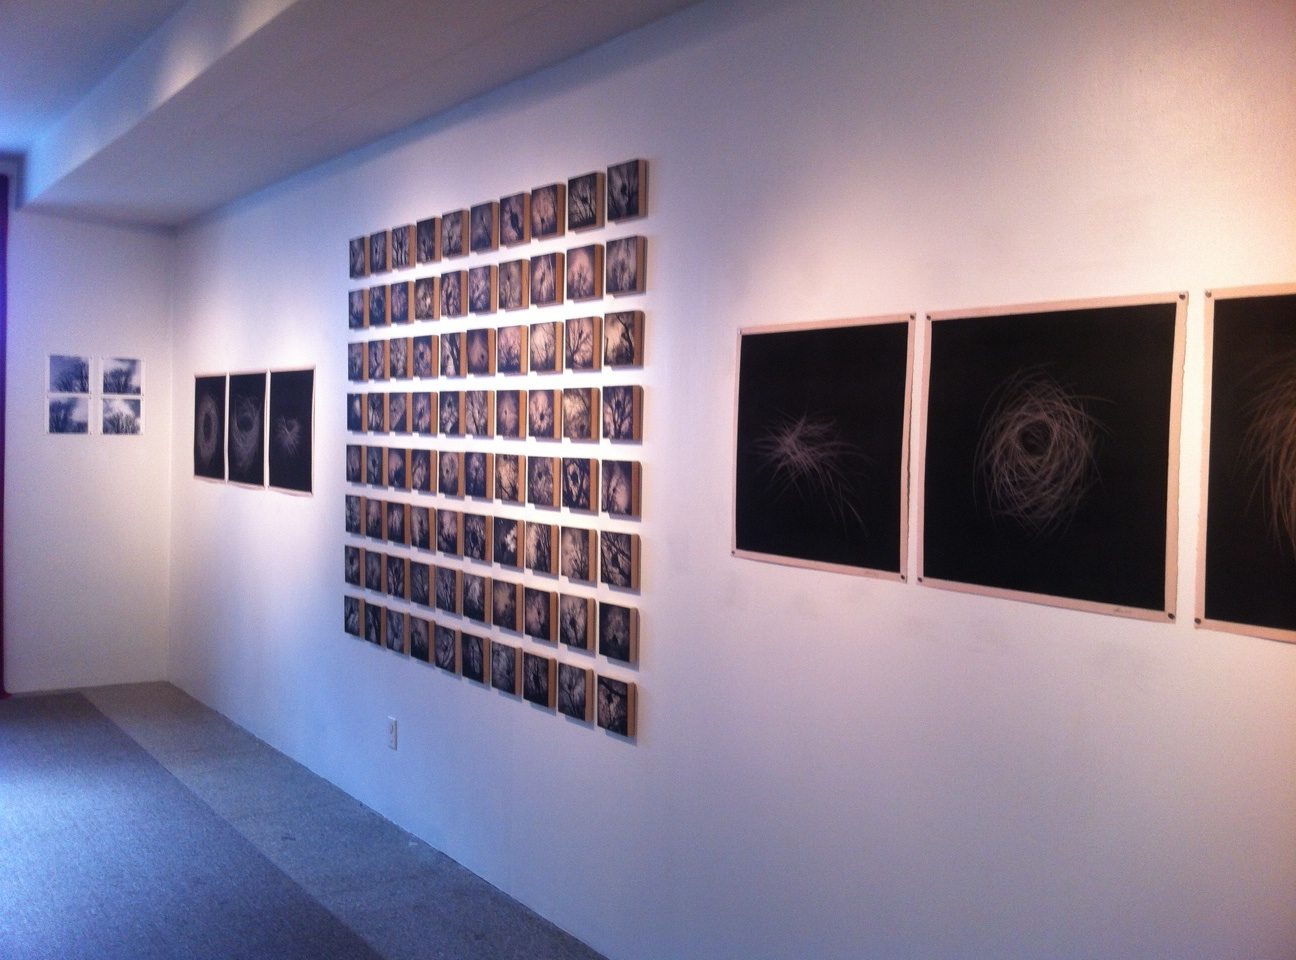 a view of some of the work in the gallery ...